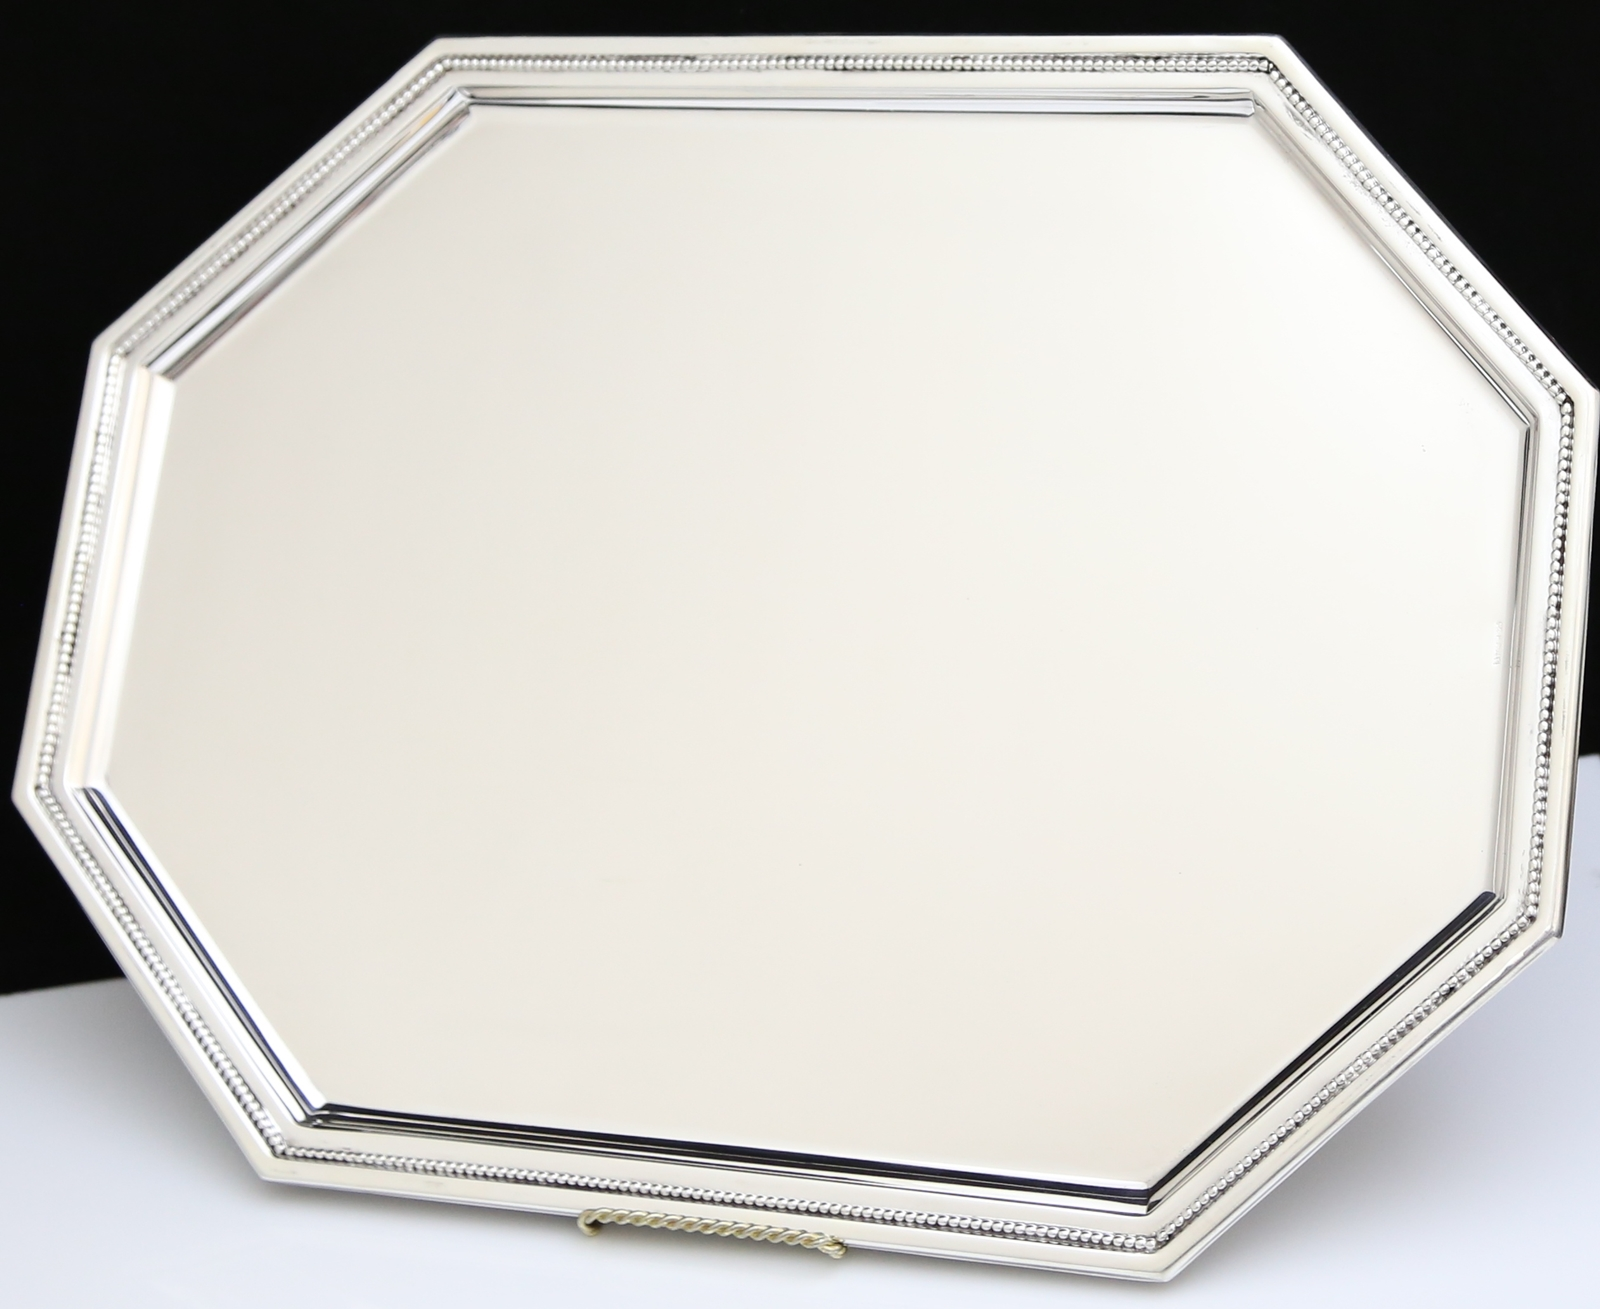 BEAUTIFUL SOLID 925 STERLING SILVER MODERN ELONGATED OCTAGON TRAY / PLATTER